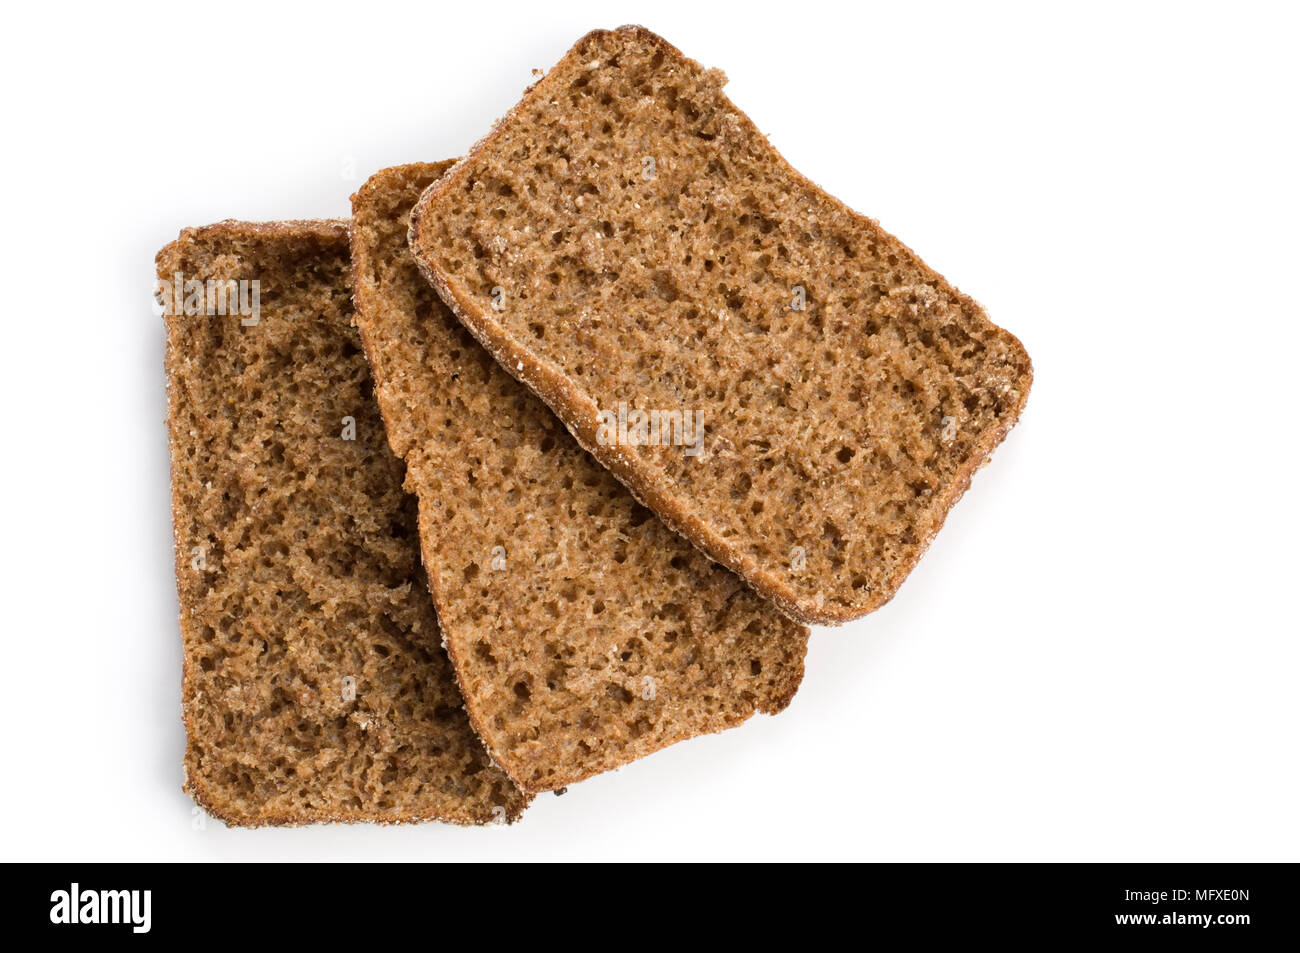 Slices of rye bread on white background. - Stock Image